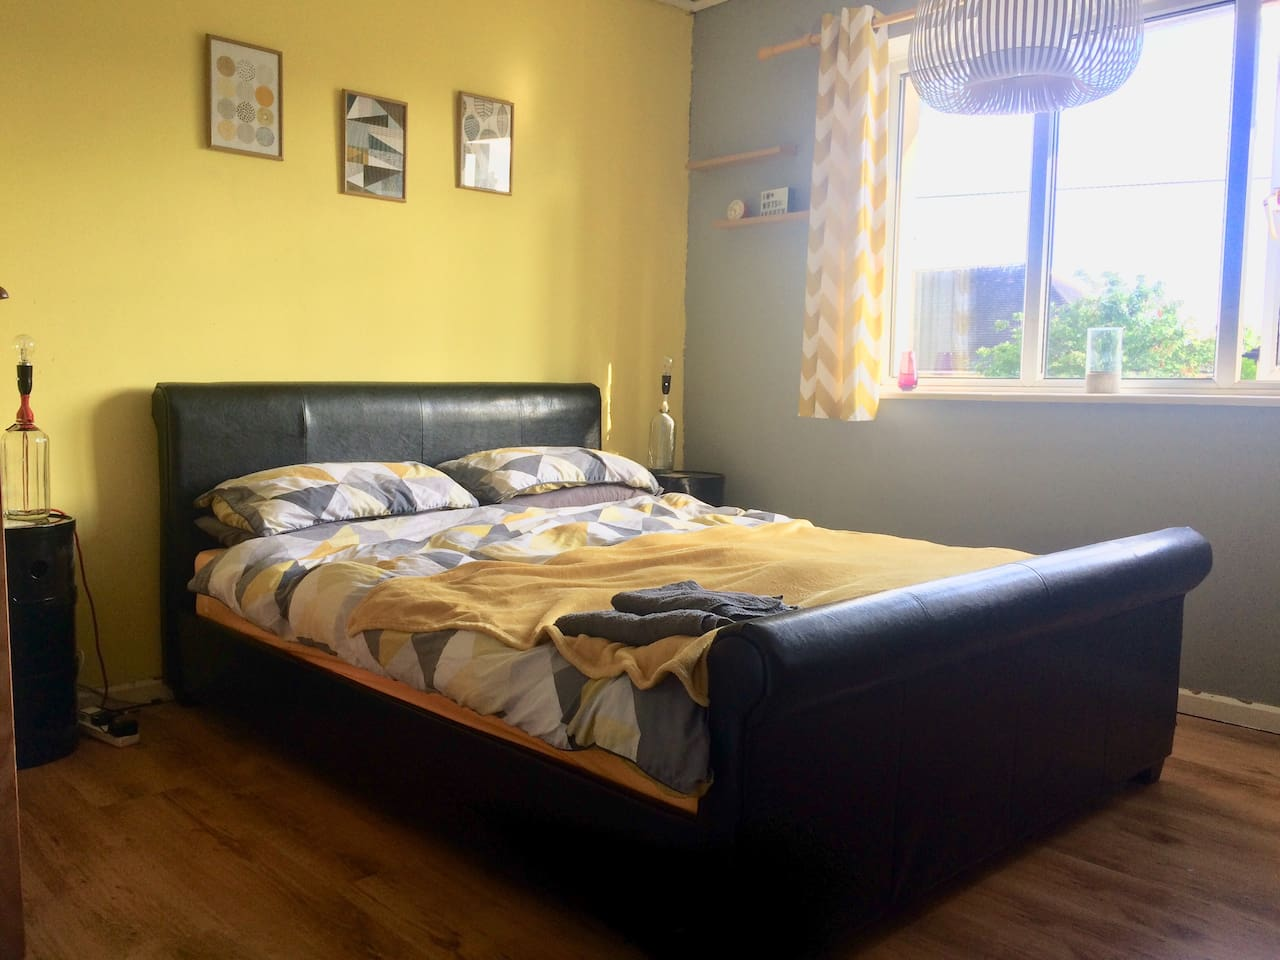 Double bedroom, with TV, king sized bed, built in wardrobe, chest of drawers & 2 bedside units.